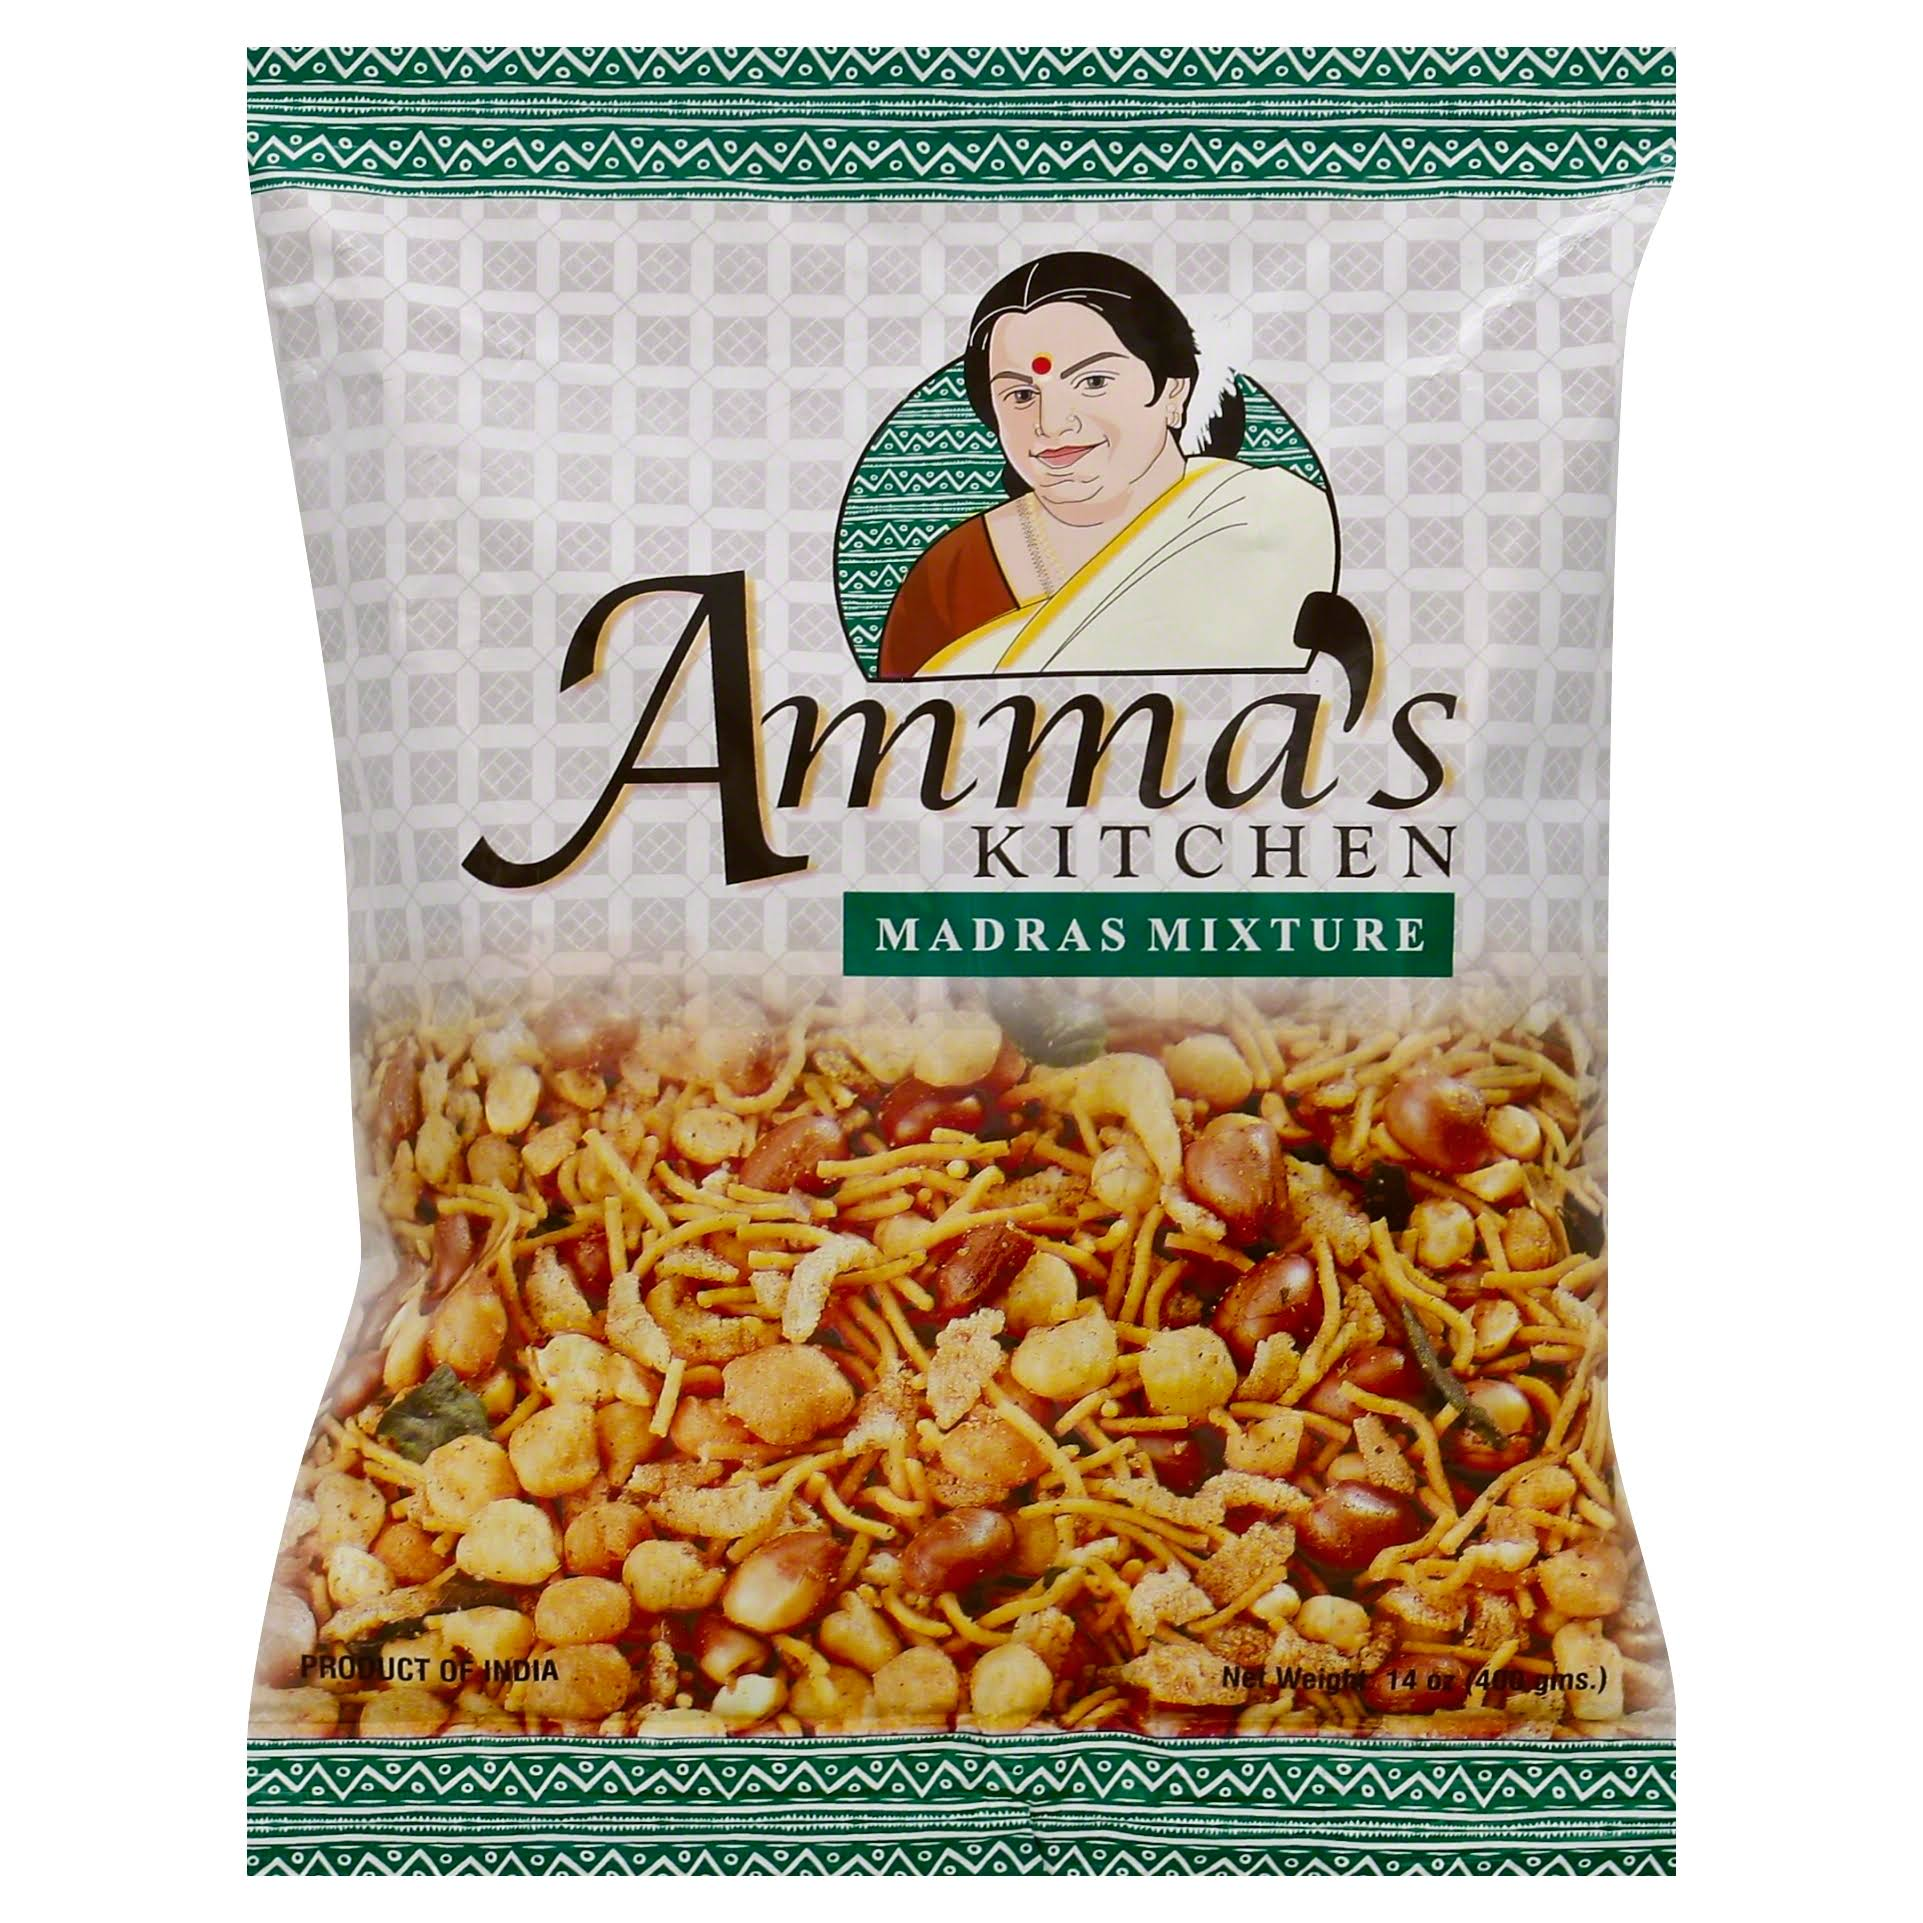 Ammas Kitchen Madras Mixture - 14 oz